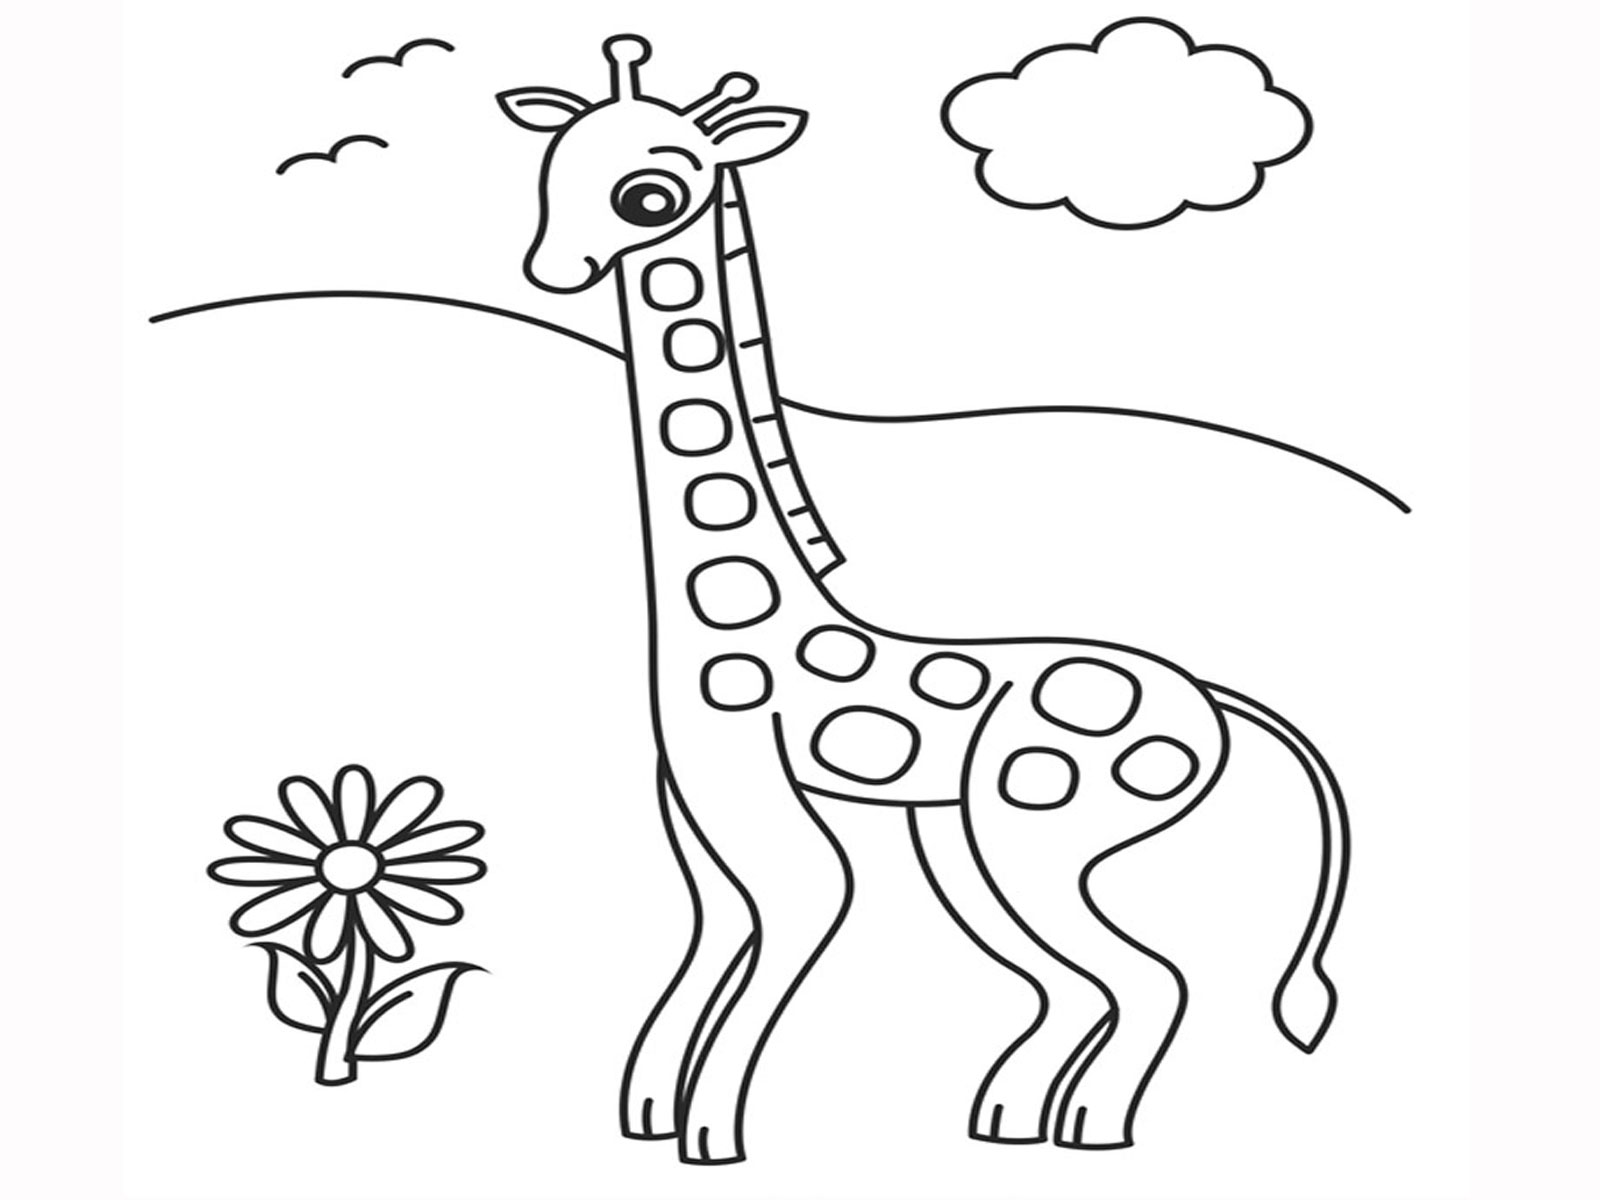 Giraffe descprition and facts for Okapi coloring page